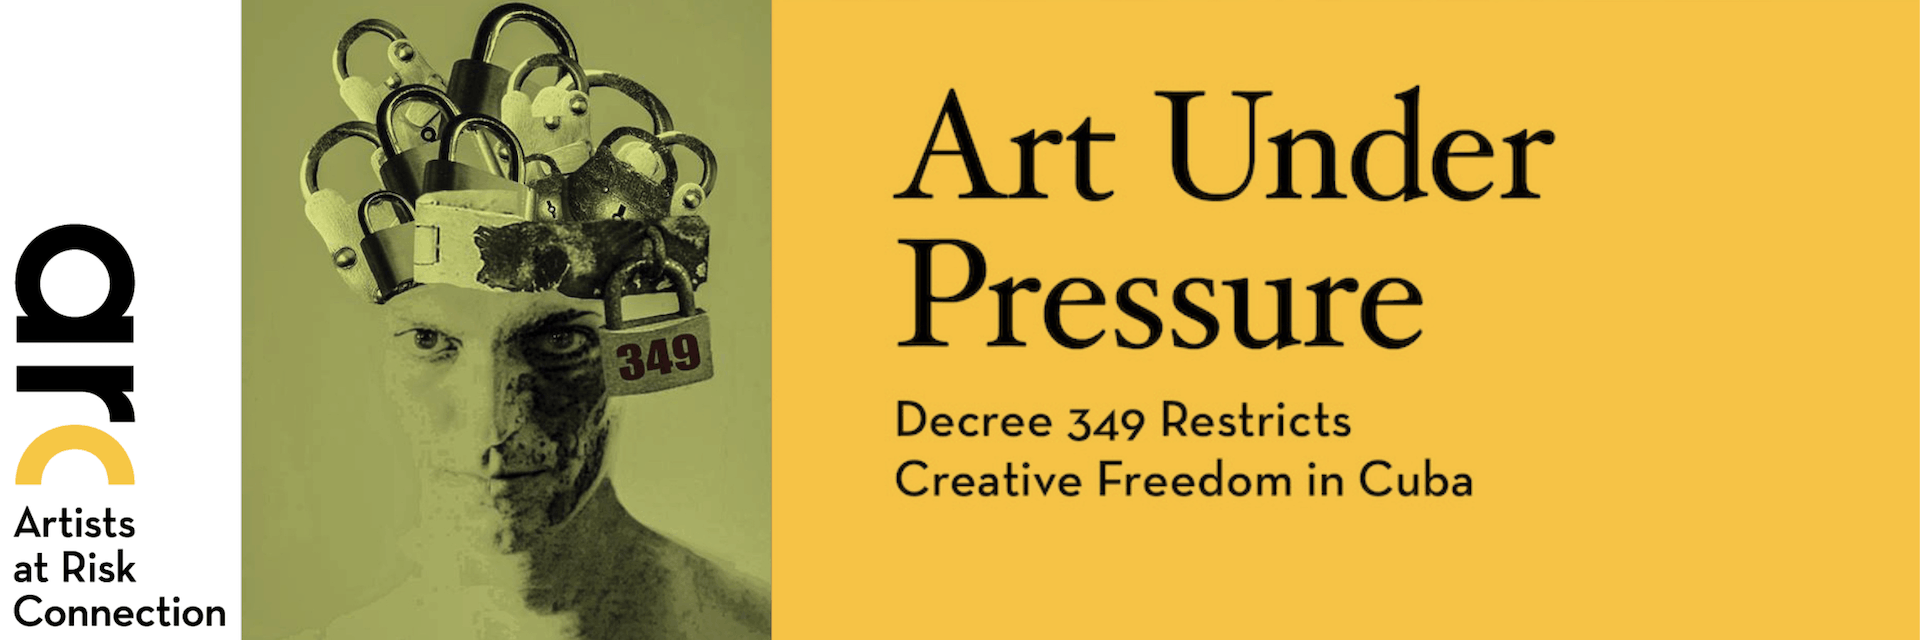 cover image for Art Under Pressure report